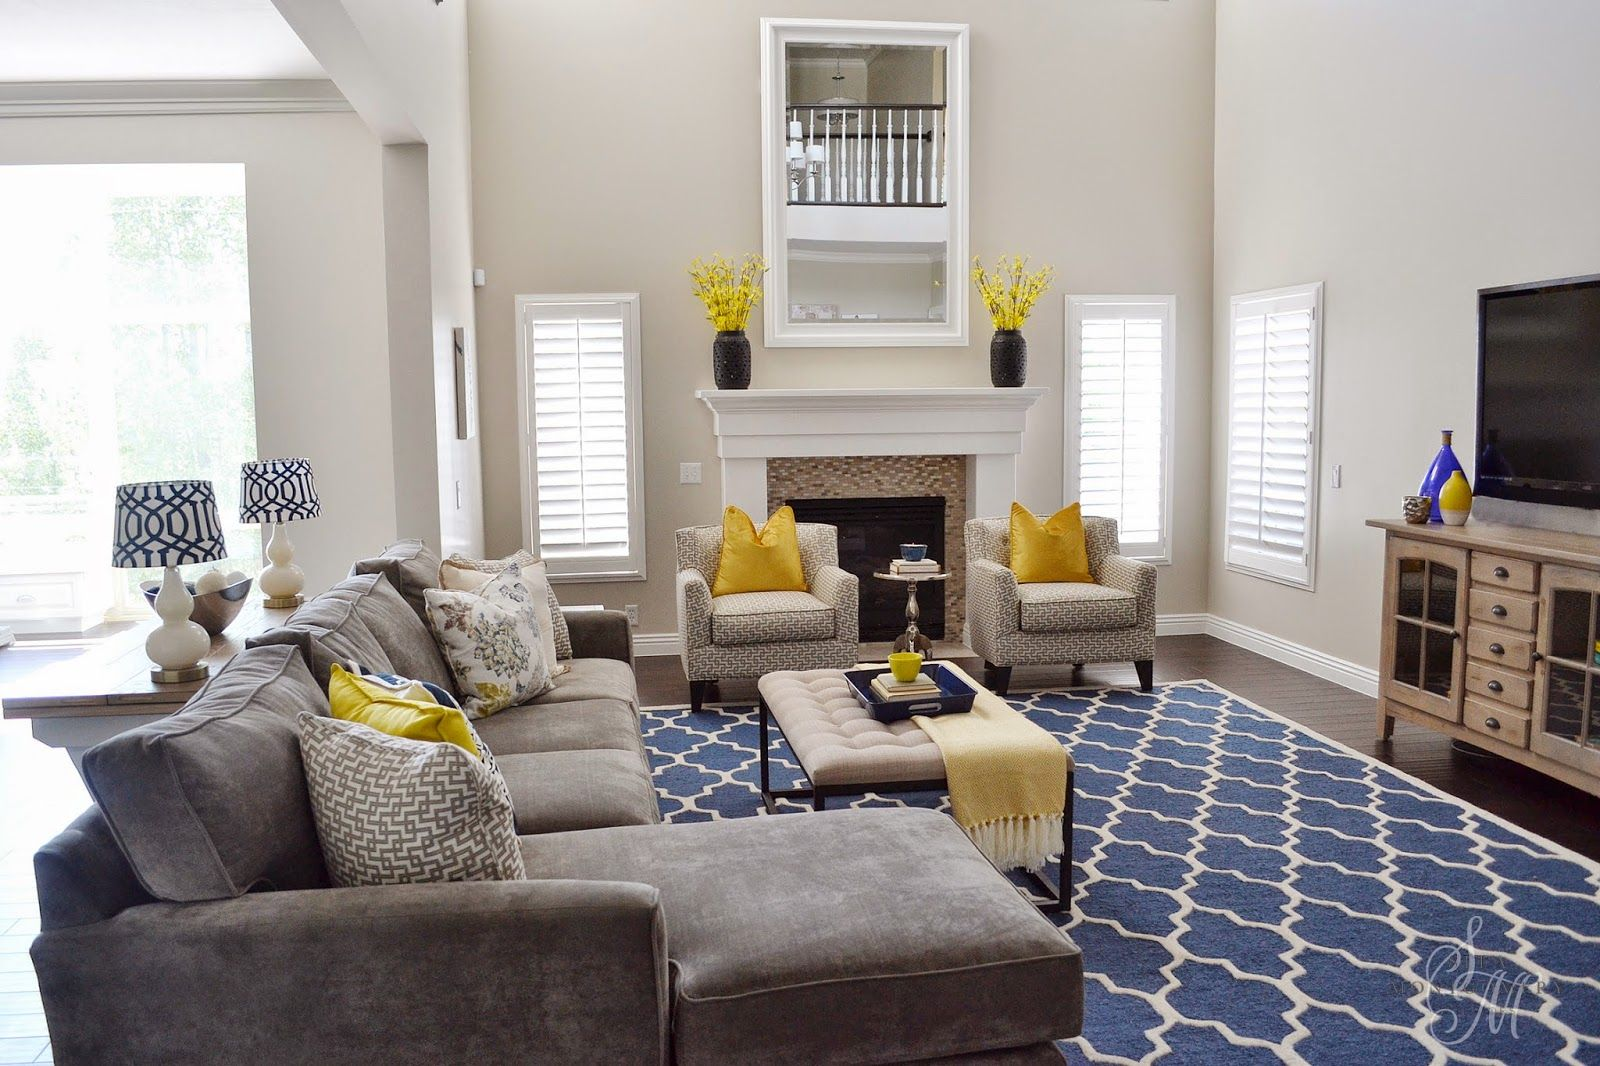 Client Project Reveal The Summerwood Project Renovation Sita Montgomery Interiors Yellow Living Room Yellow Decor Living Room Blue And Yellow Living Room Living room ideas yellow